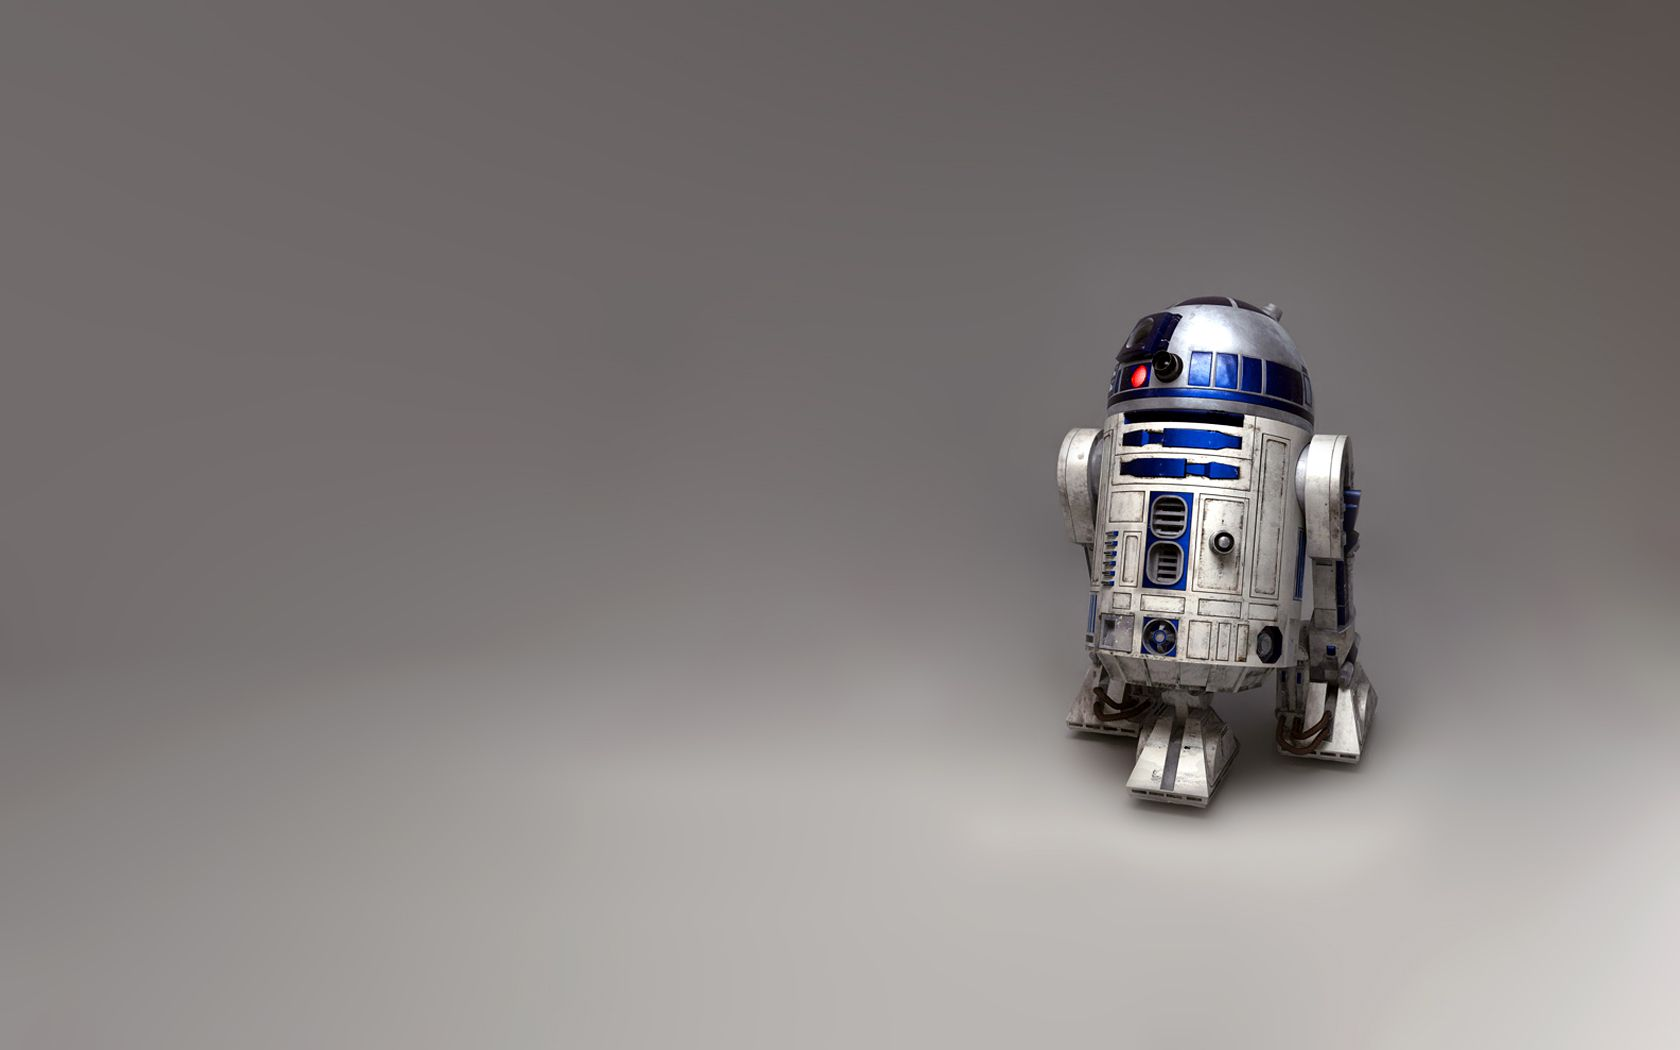 Collection of R2d2 Wallpaper on HDWallpapers